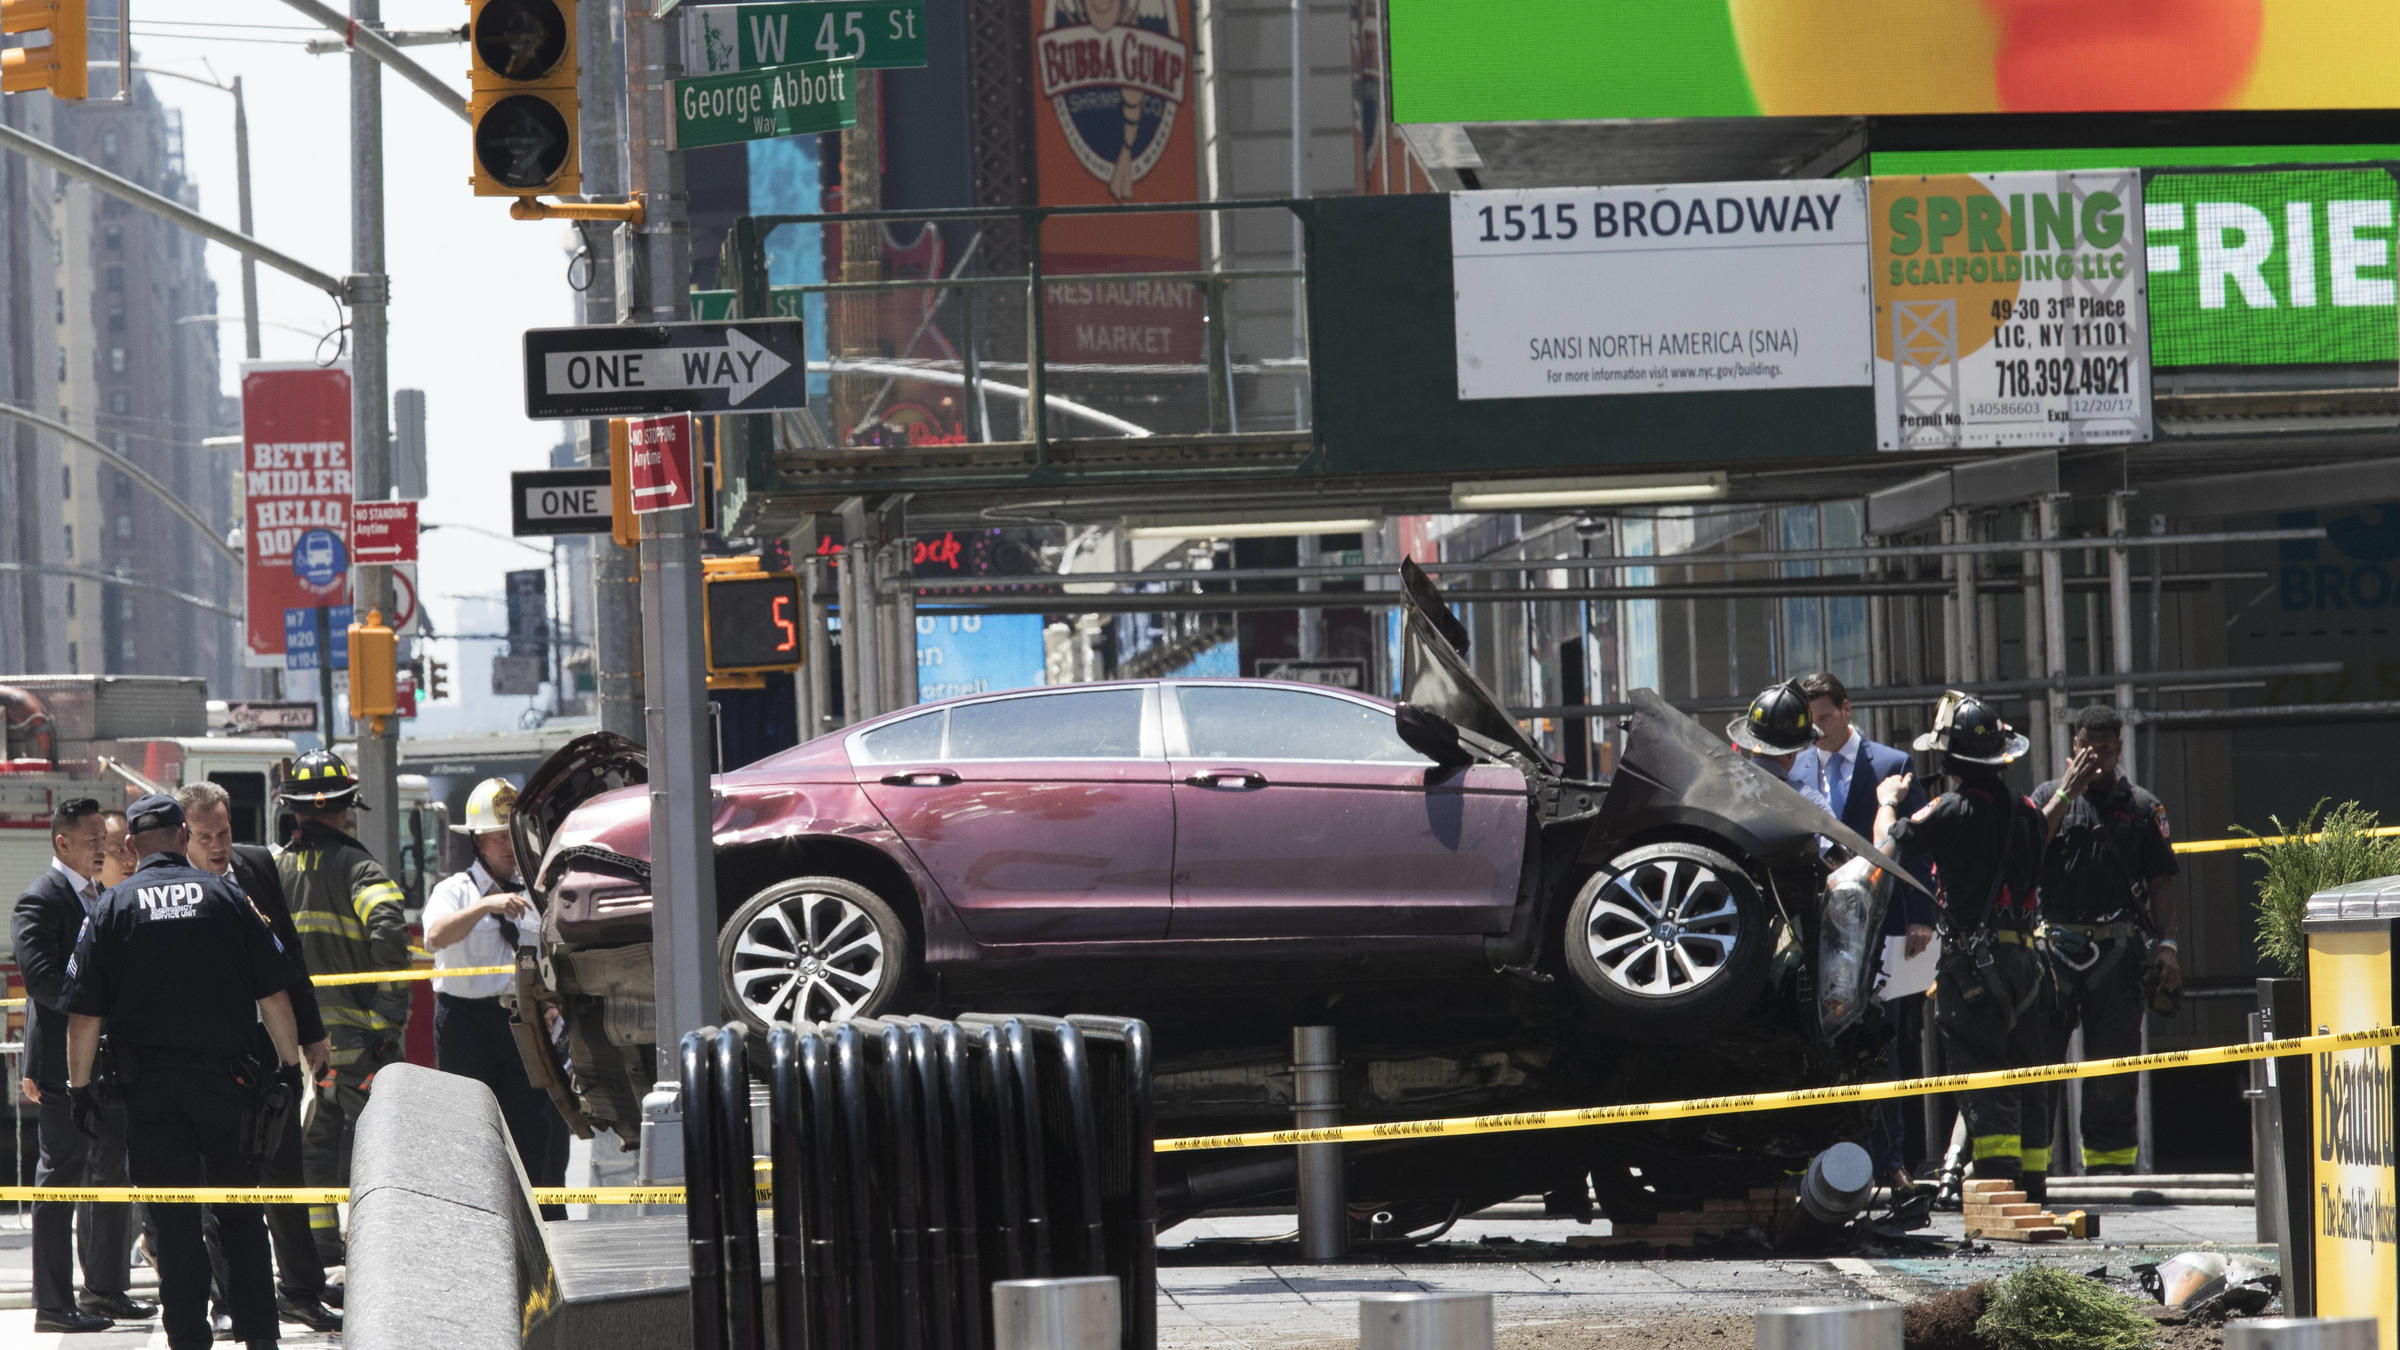 Man who ran over pedestrians was 'hearing voices'